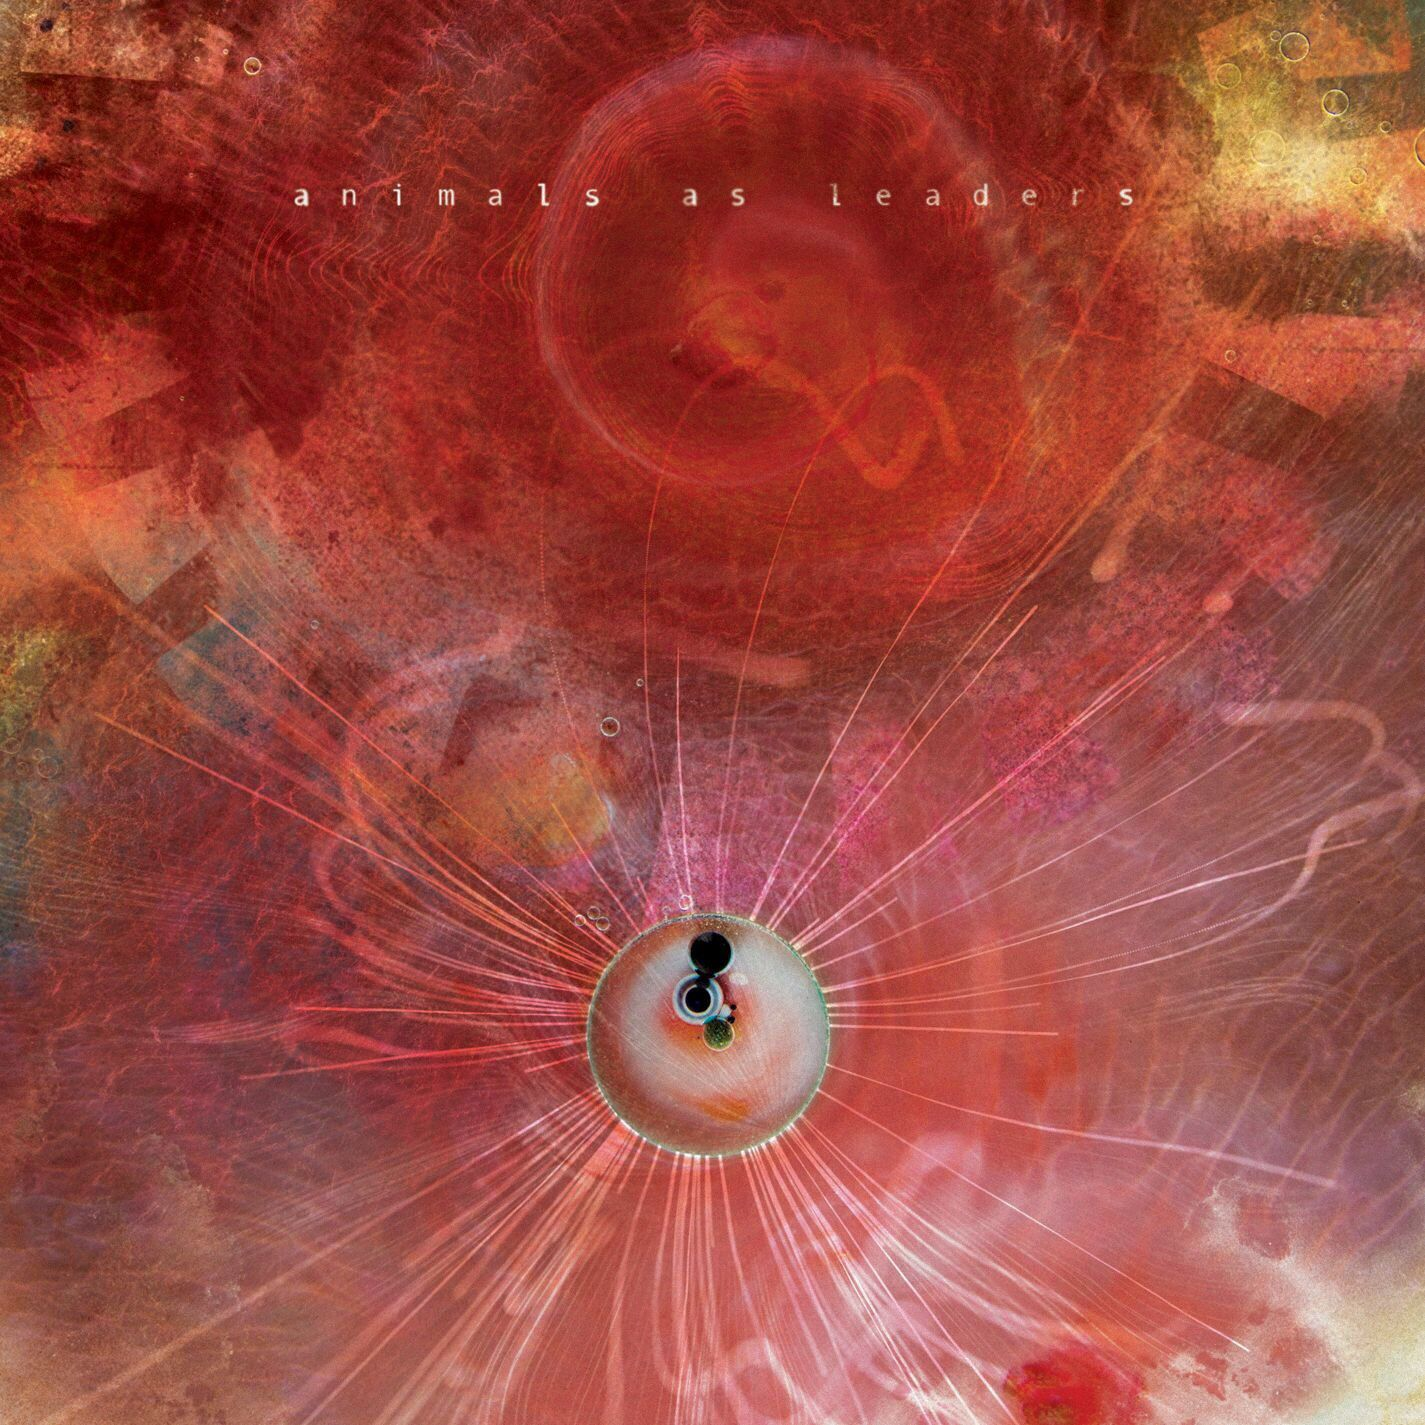 The Joy Of Motion Animals As Leaders Amazing Album Amazing